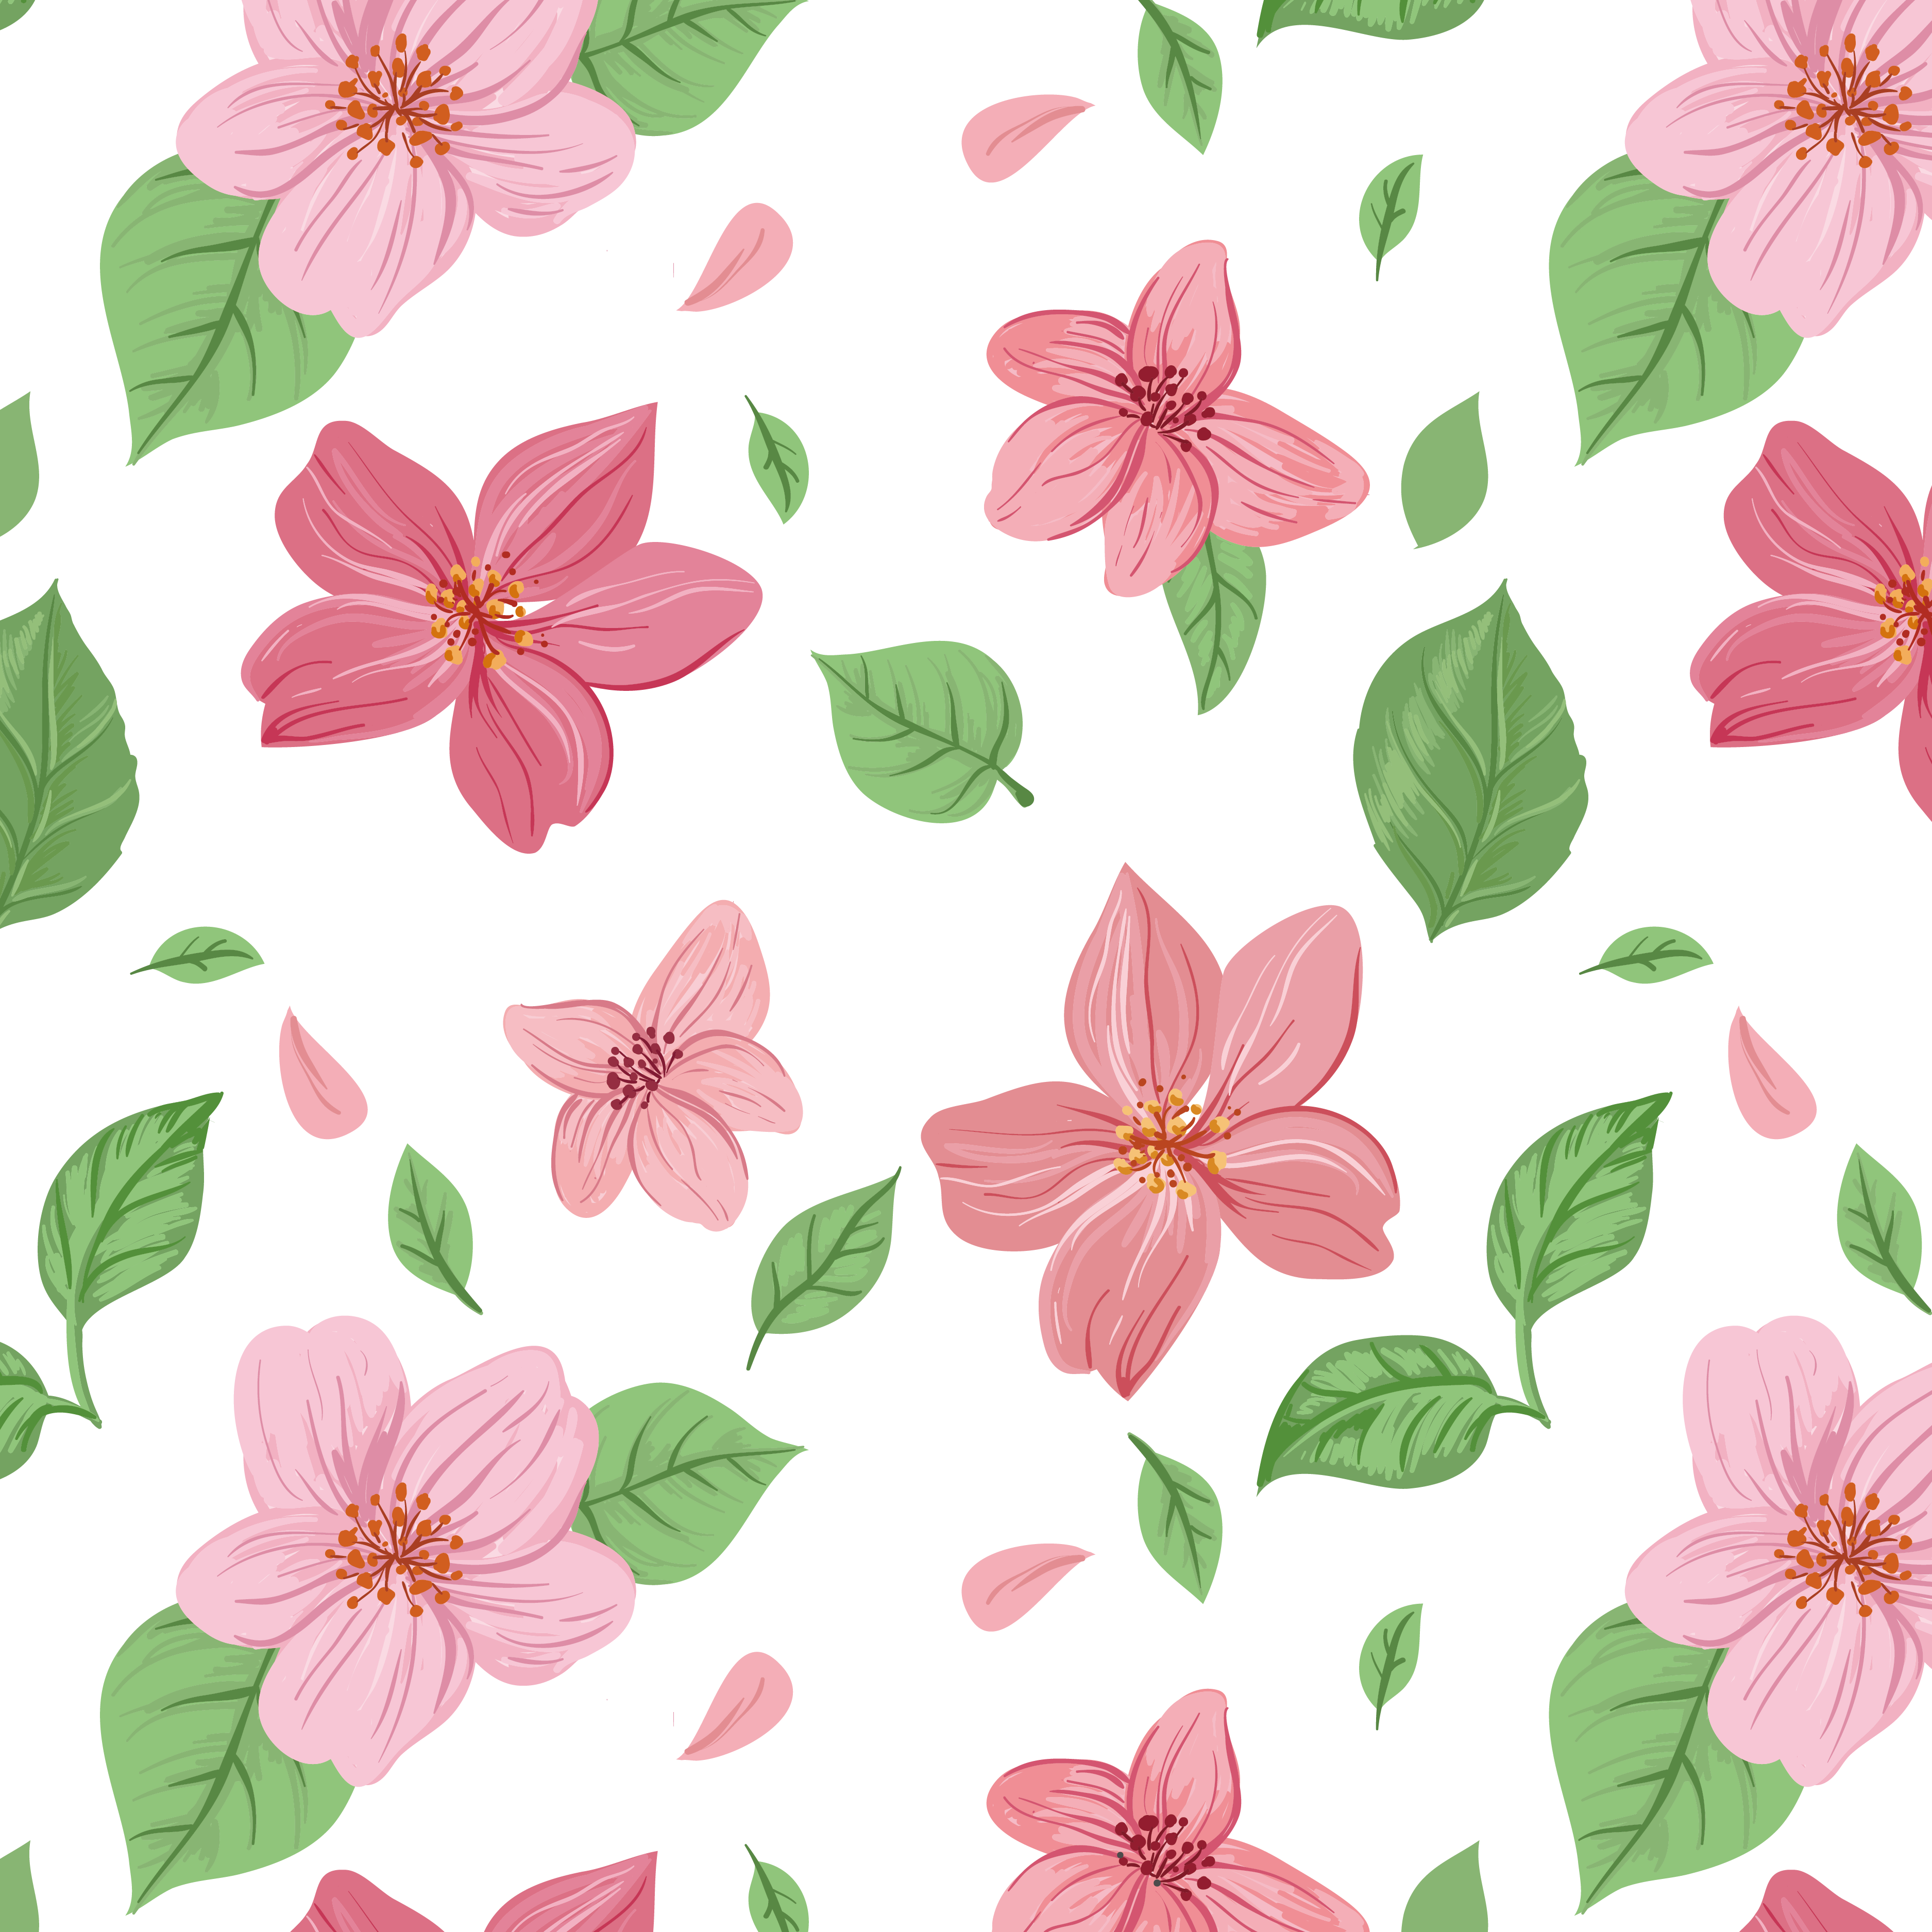 Flowers background png. Pink euclidean vector flower